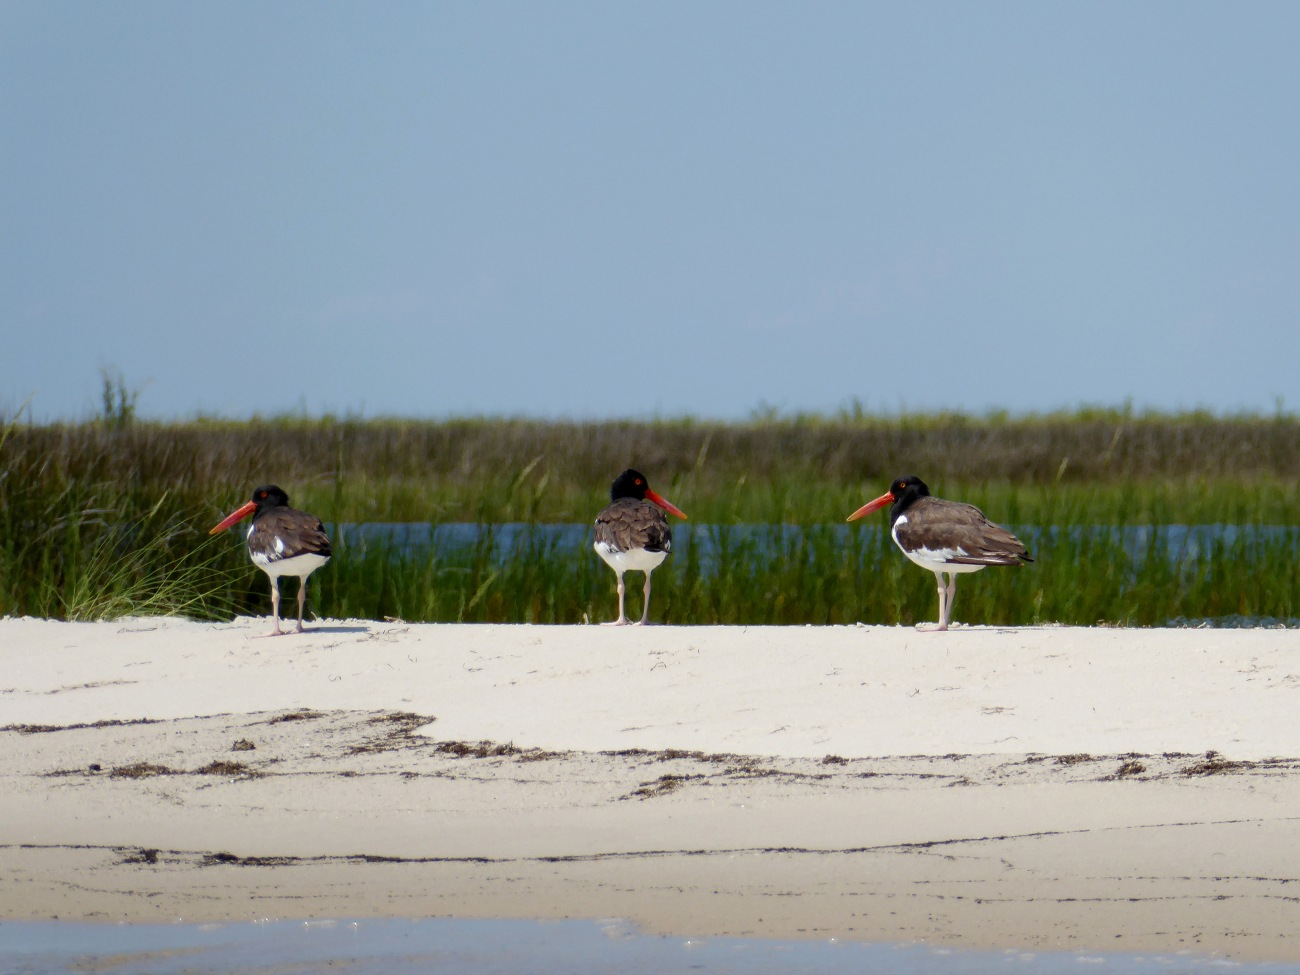 20170824_141705_Oyster Catchers